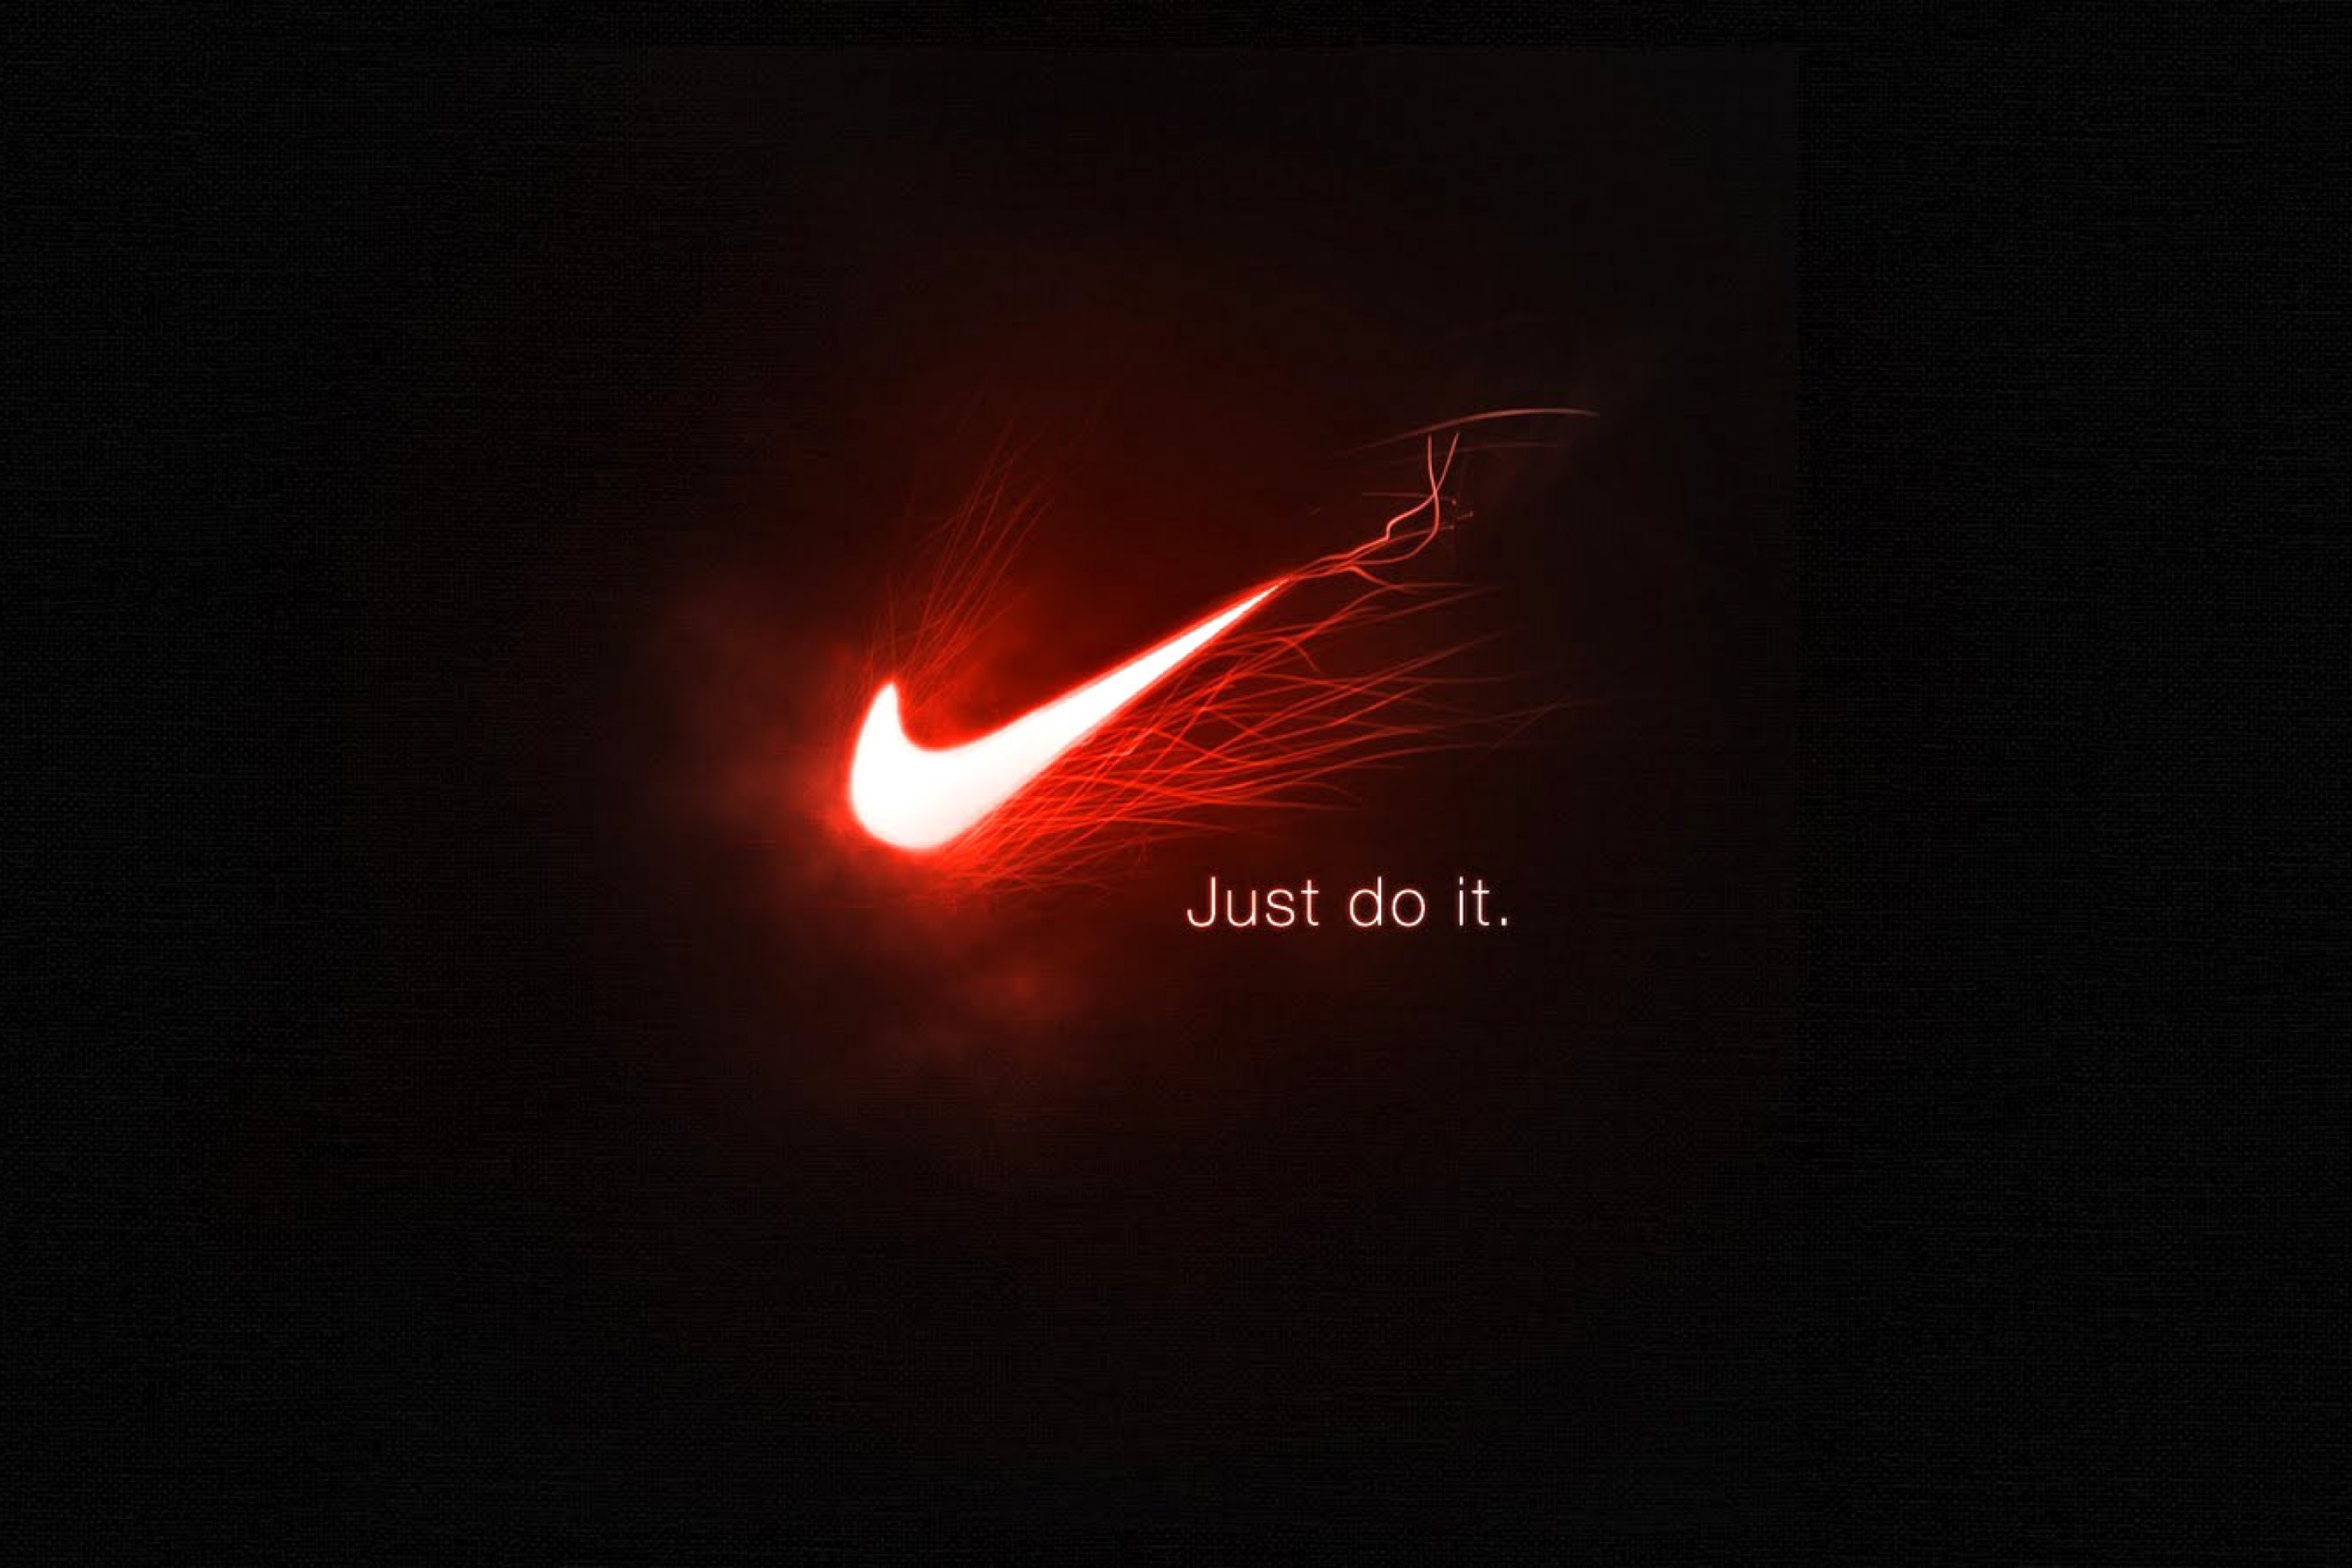 Por separado cangrejo espectro  Nike Advertising Slogan Just Do It - Fondos de pantalla gratis para Samsung  Galaxy S6